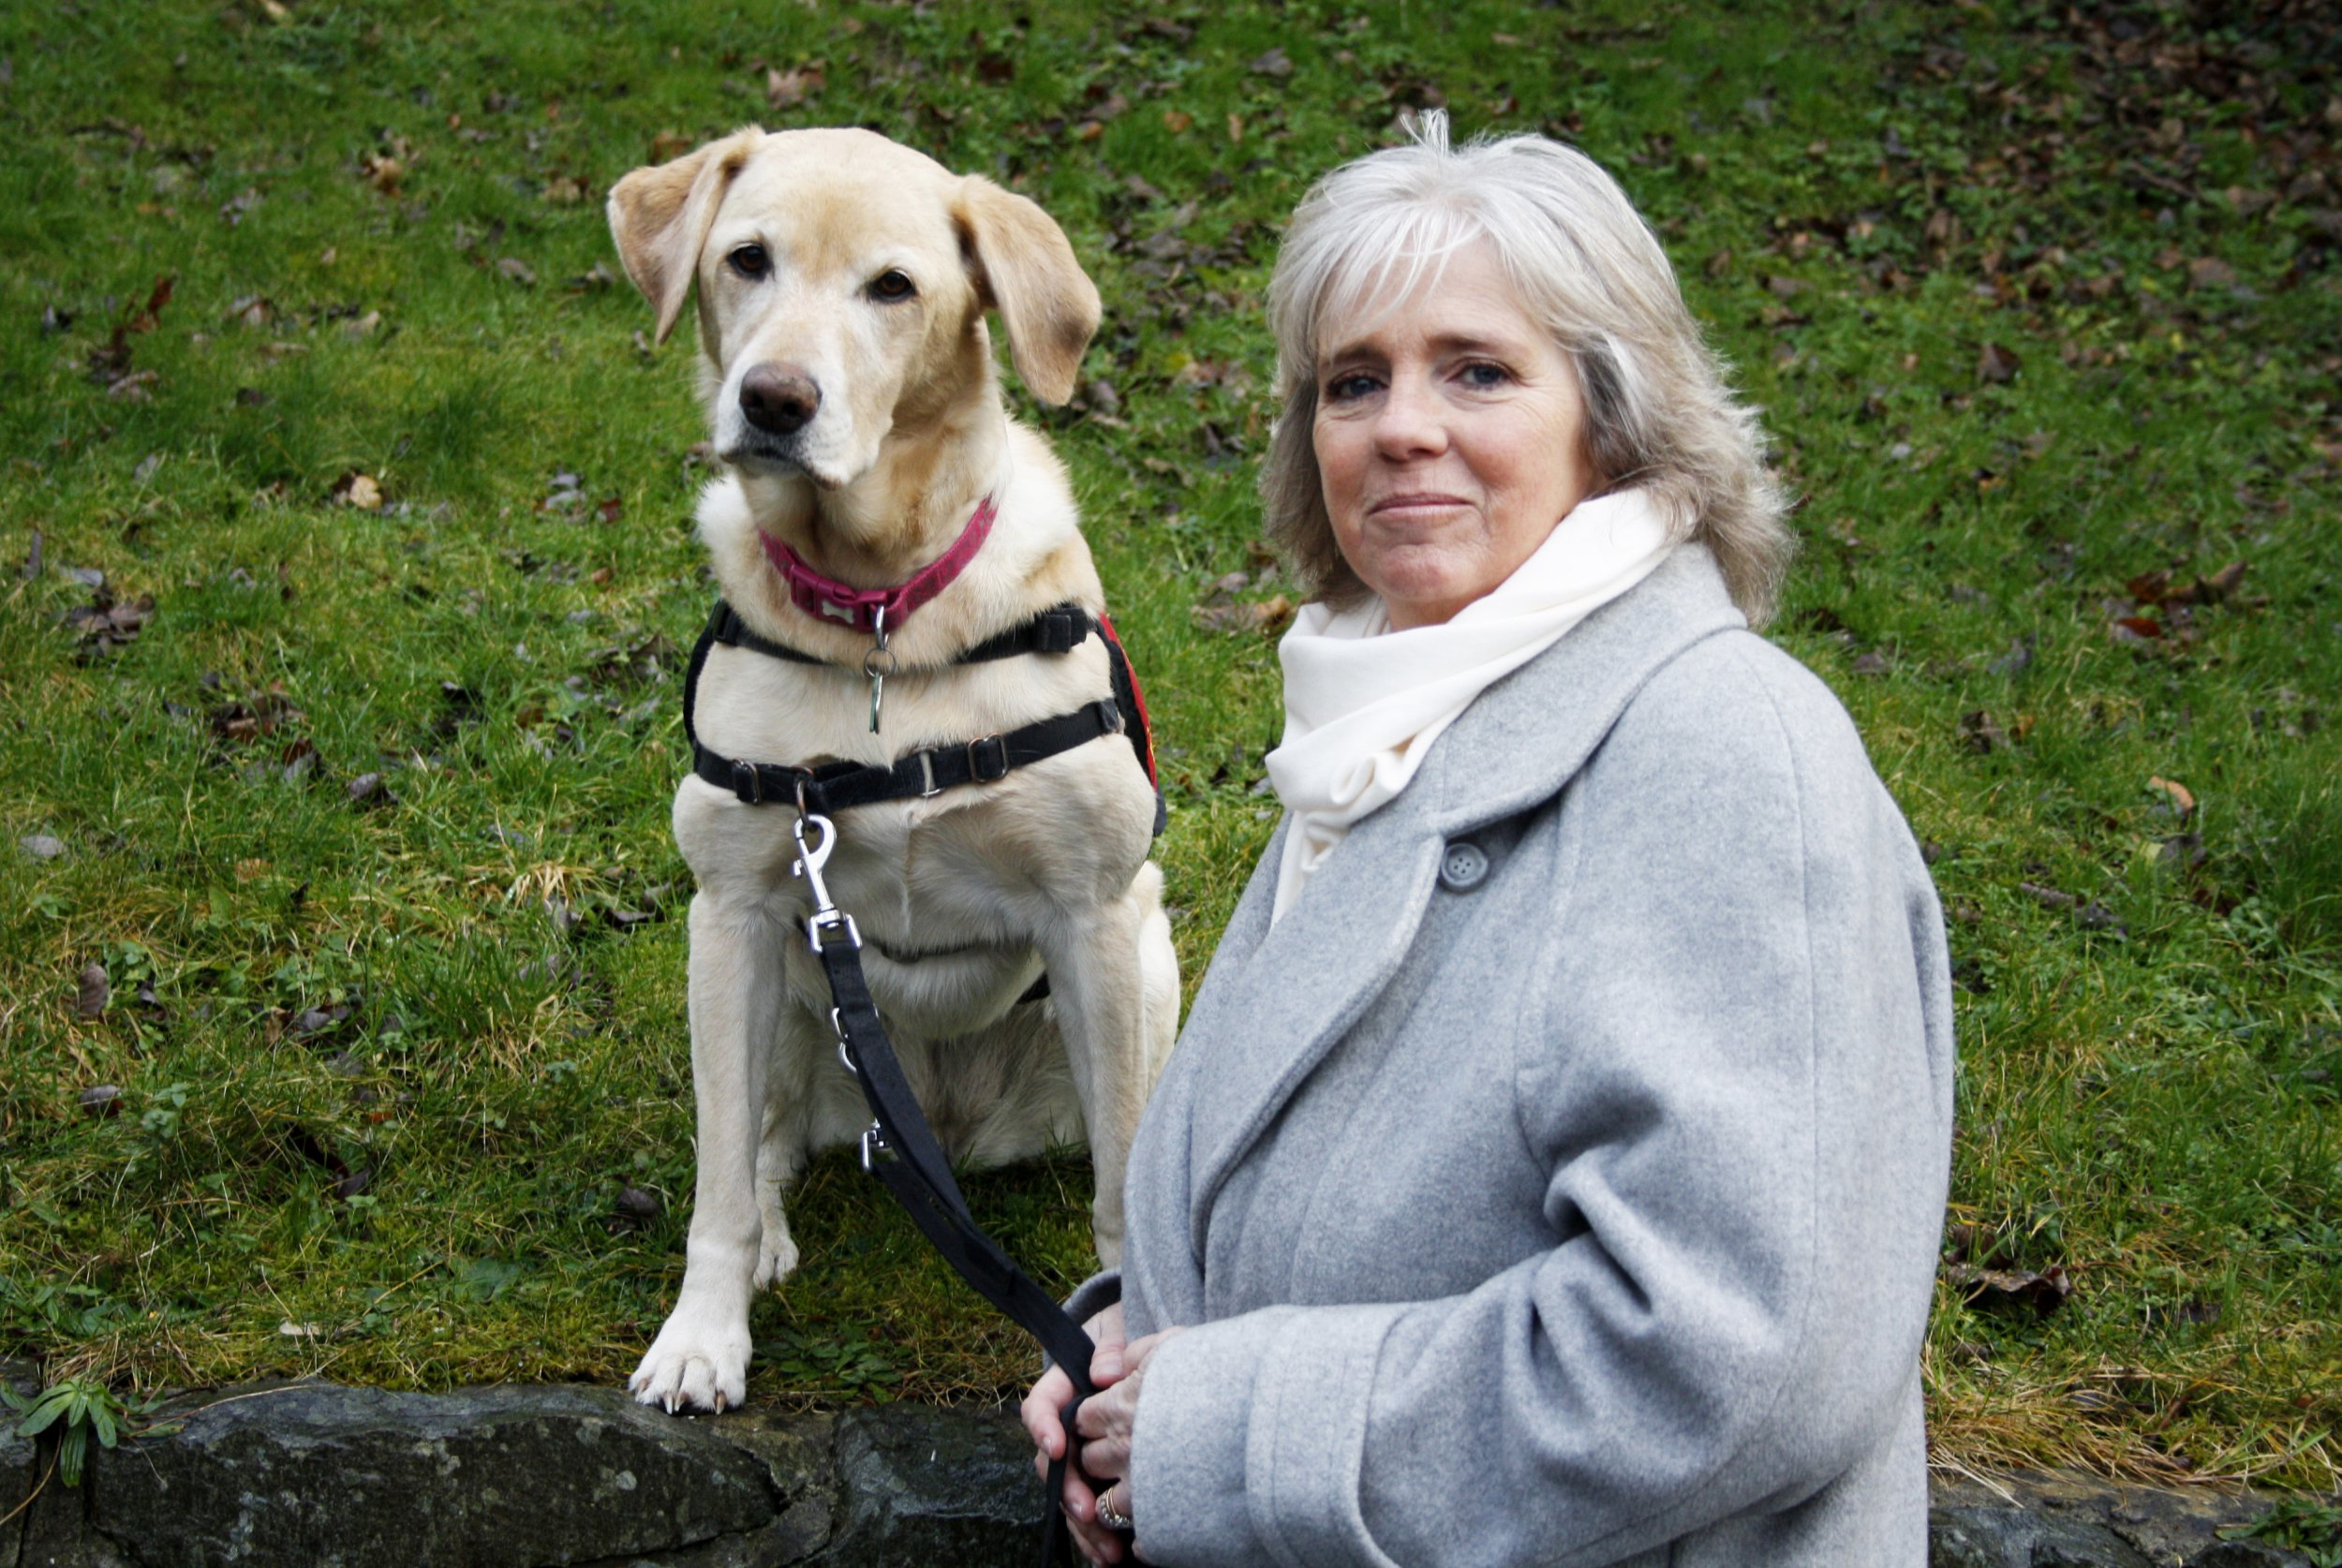 Disabled woman wins fight against pub that banned her guide dog